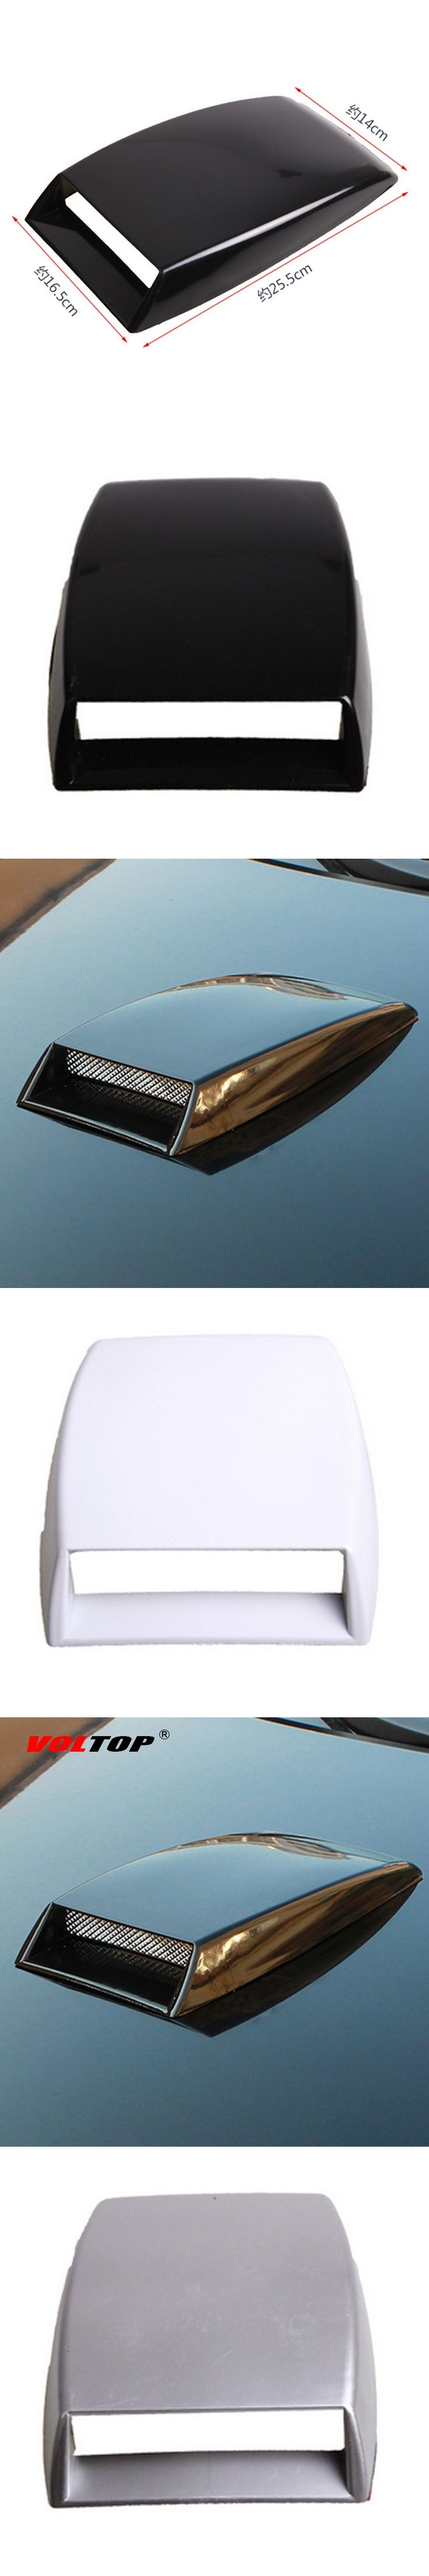 VOLTOP Car Stickers Hood Ornament Parasol Coche Roof Ventilation Air Inlet Hood Engine Cover Air Network Device Refit Decoration